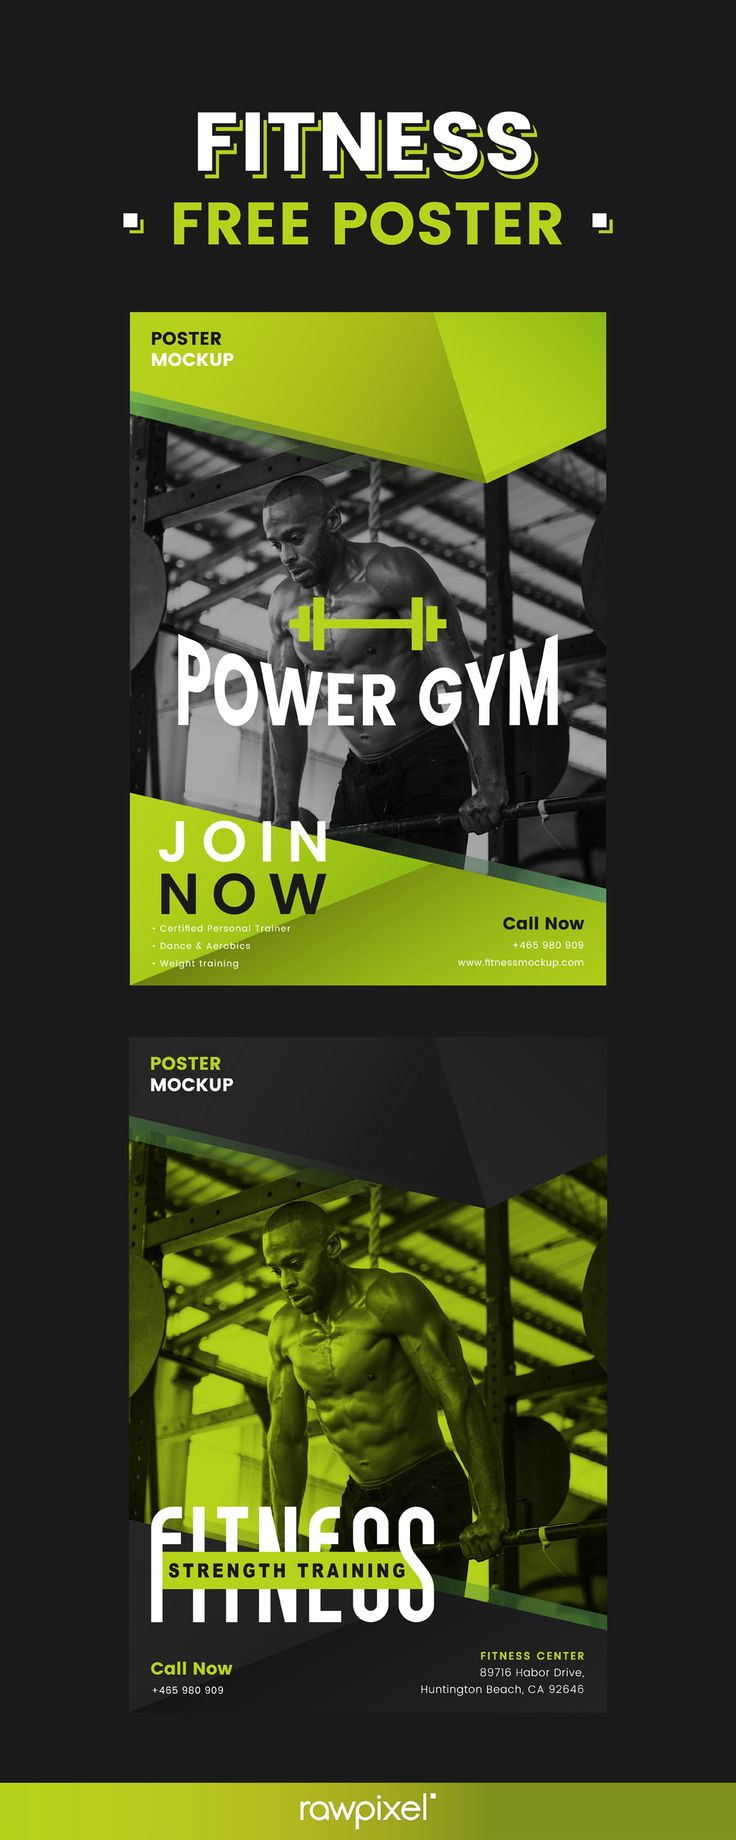 Download free poster templates for fitness centers and